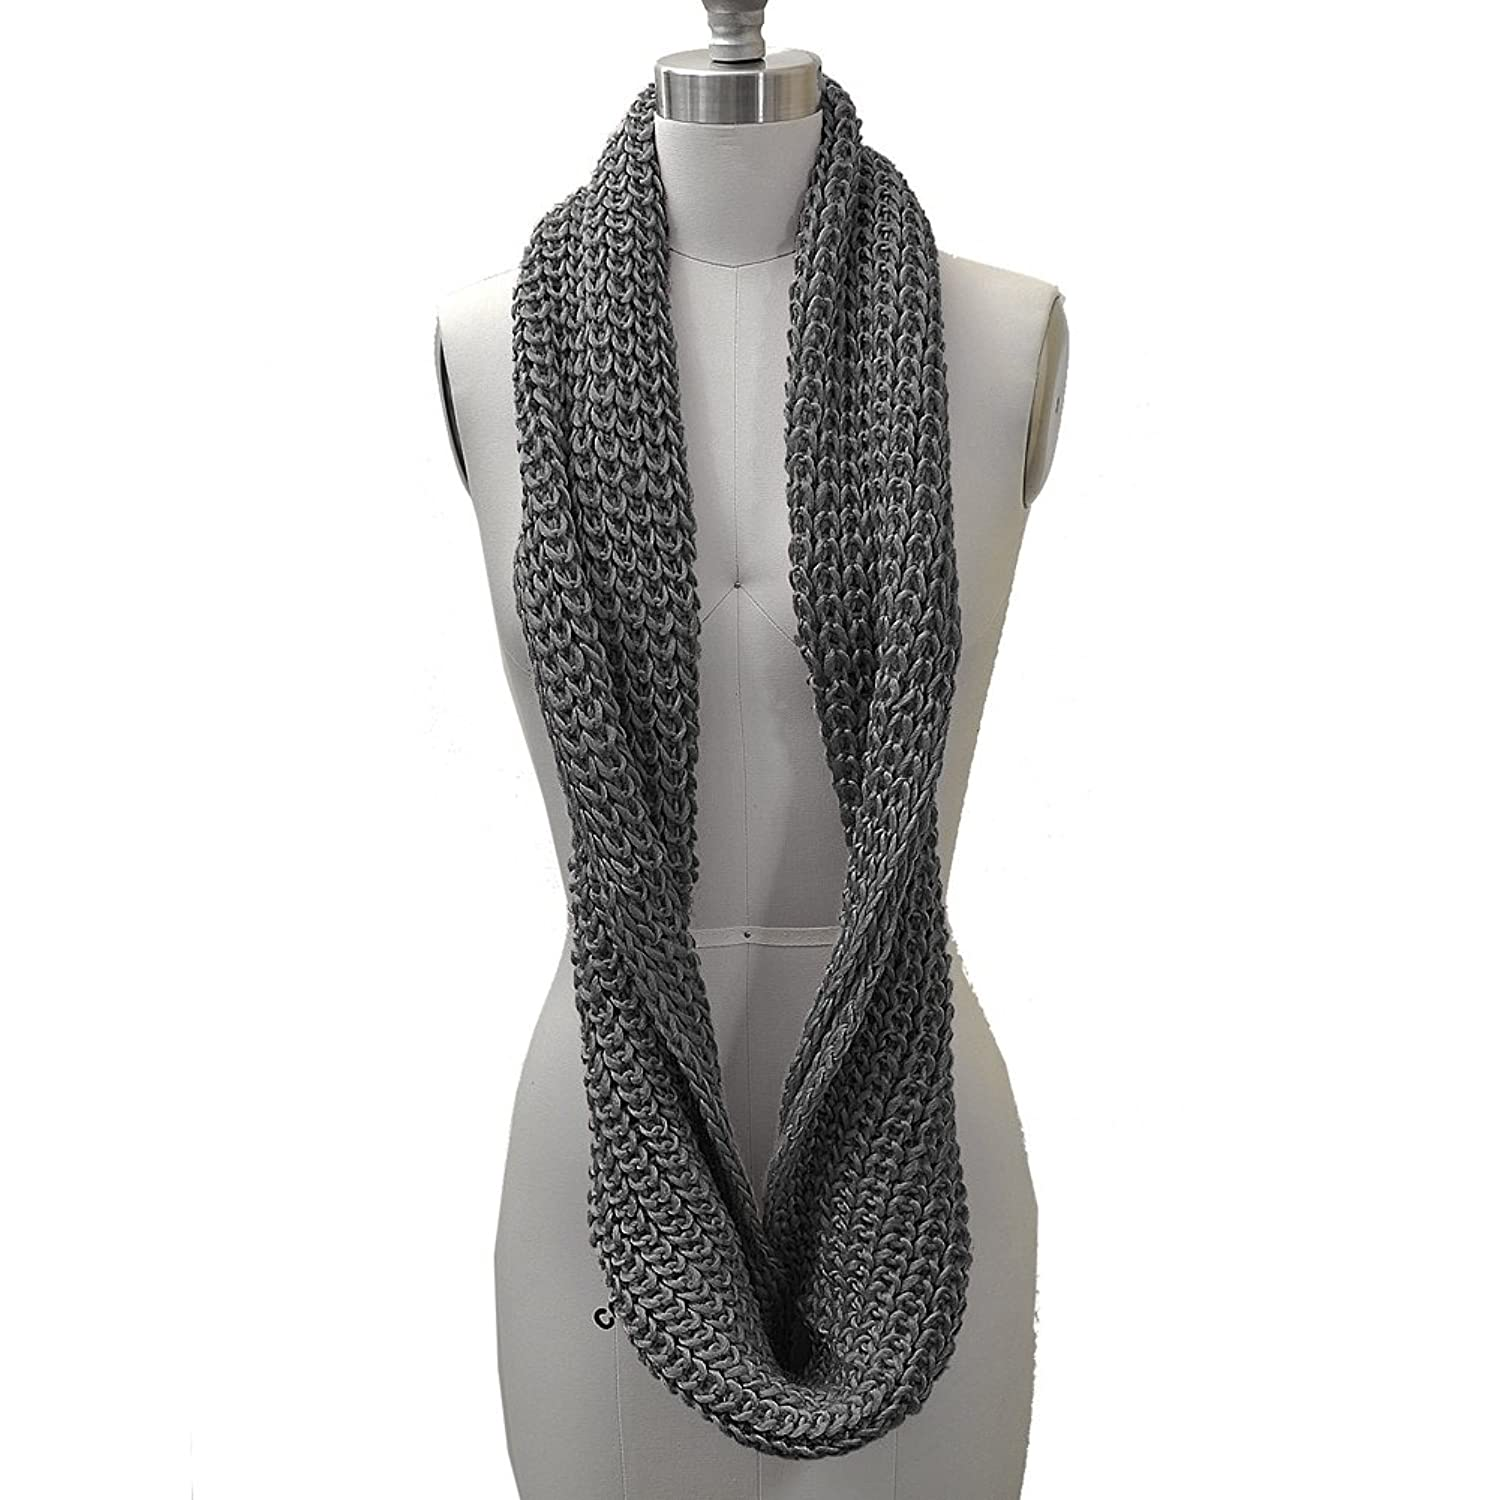 HUE21 Women's Chunky Knit Infinity Scarf Grey Color at Amazon ...